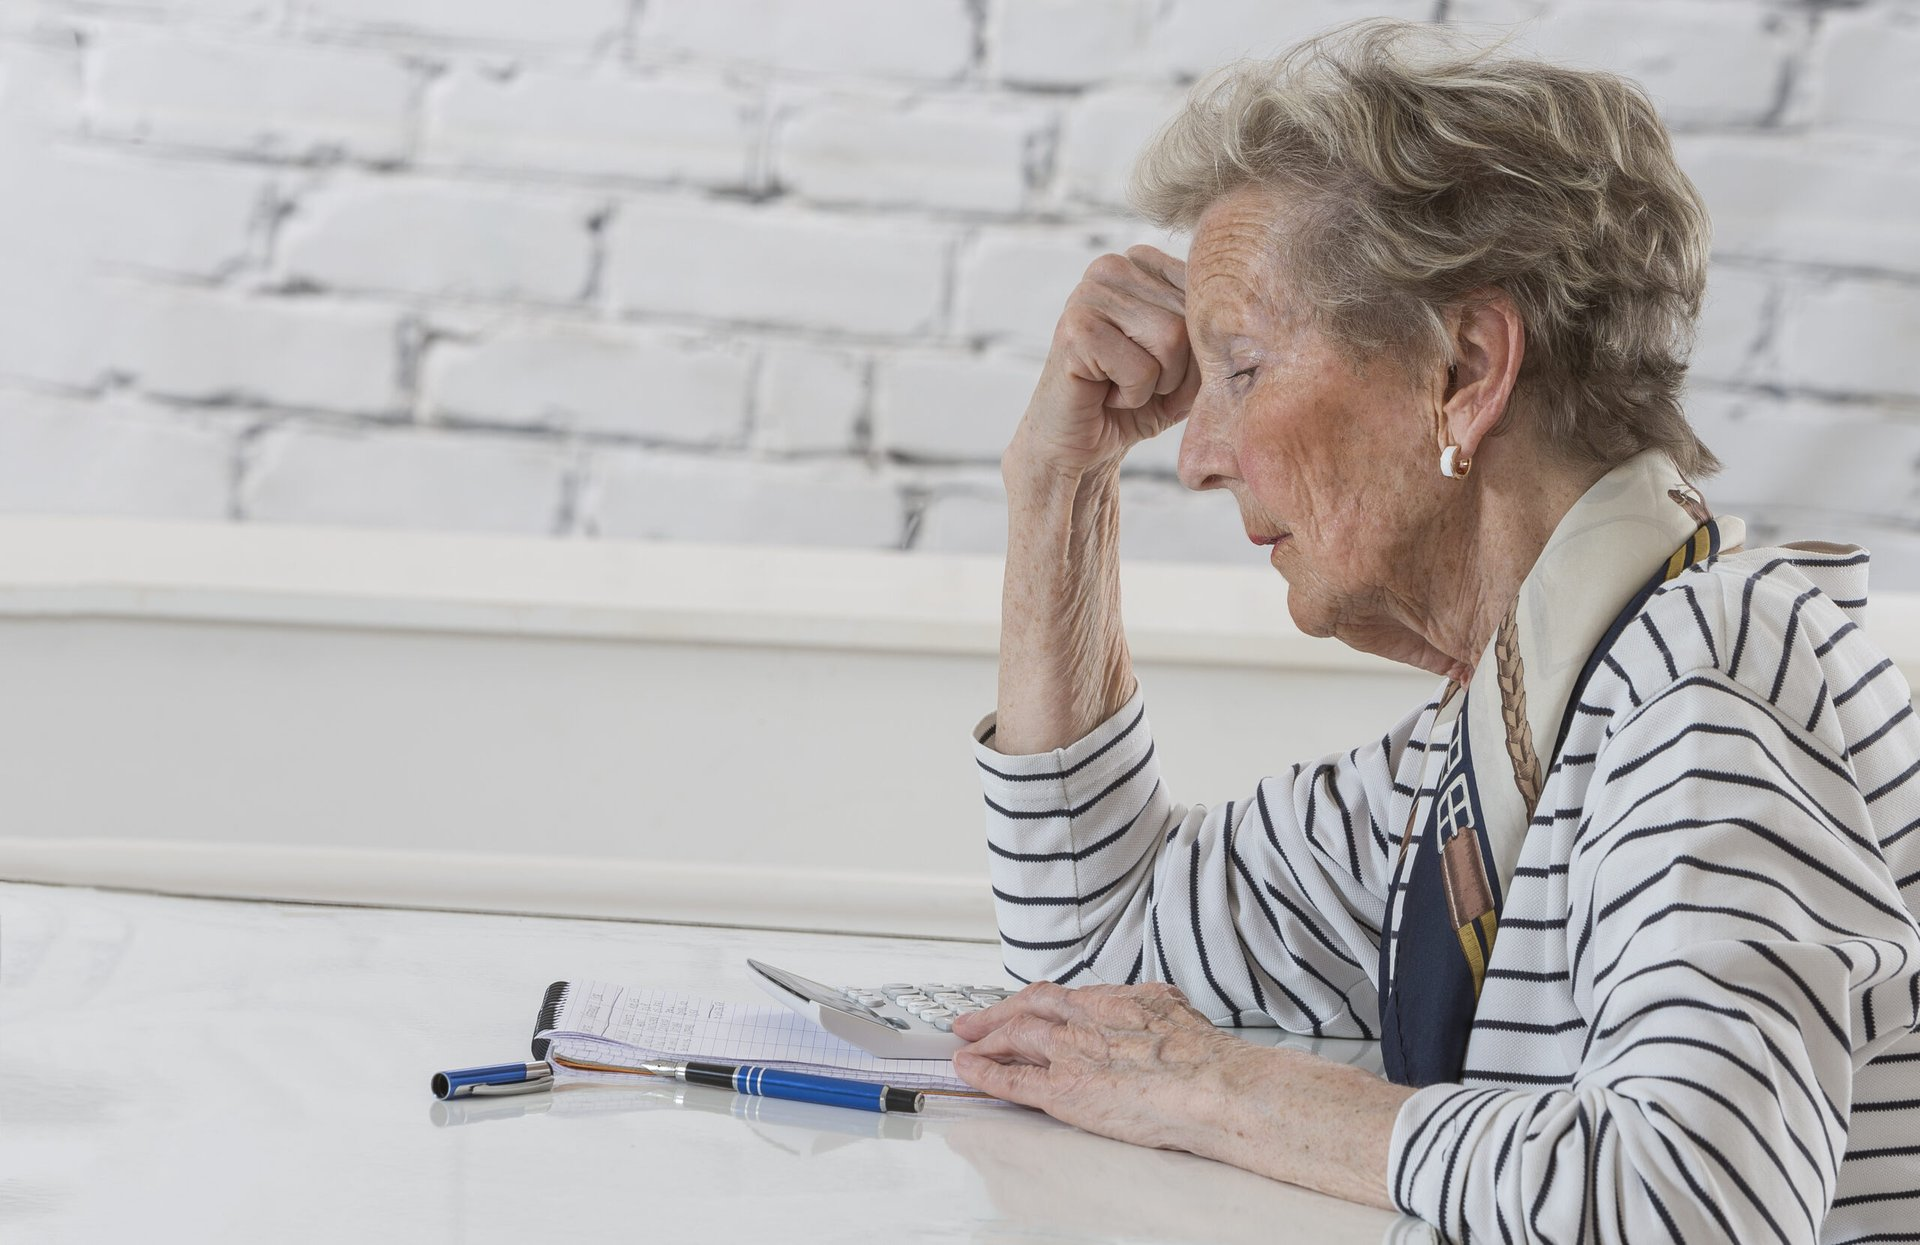 Stressed senior worrying about finances